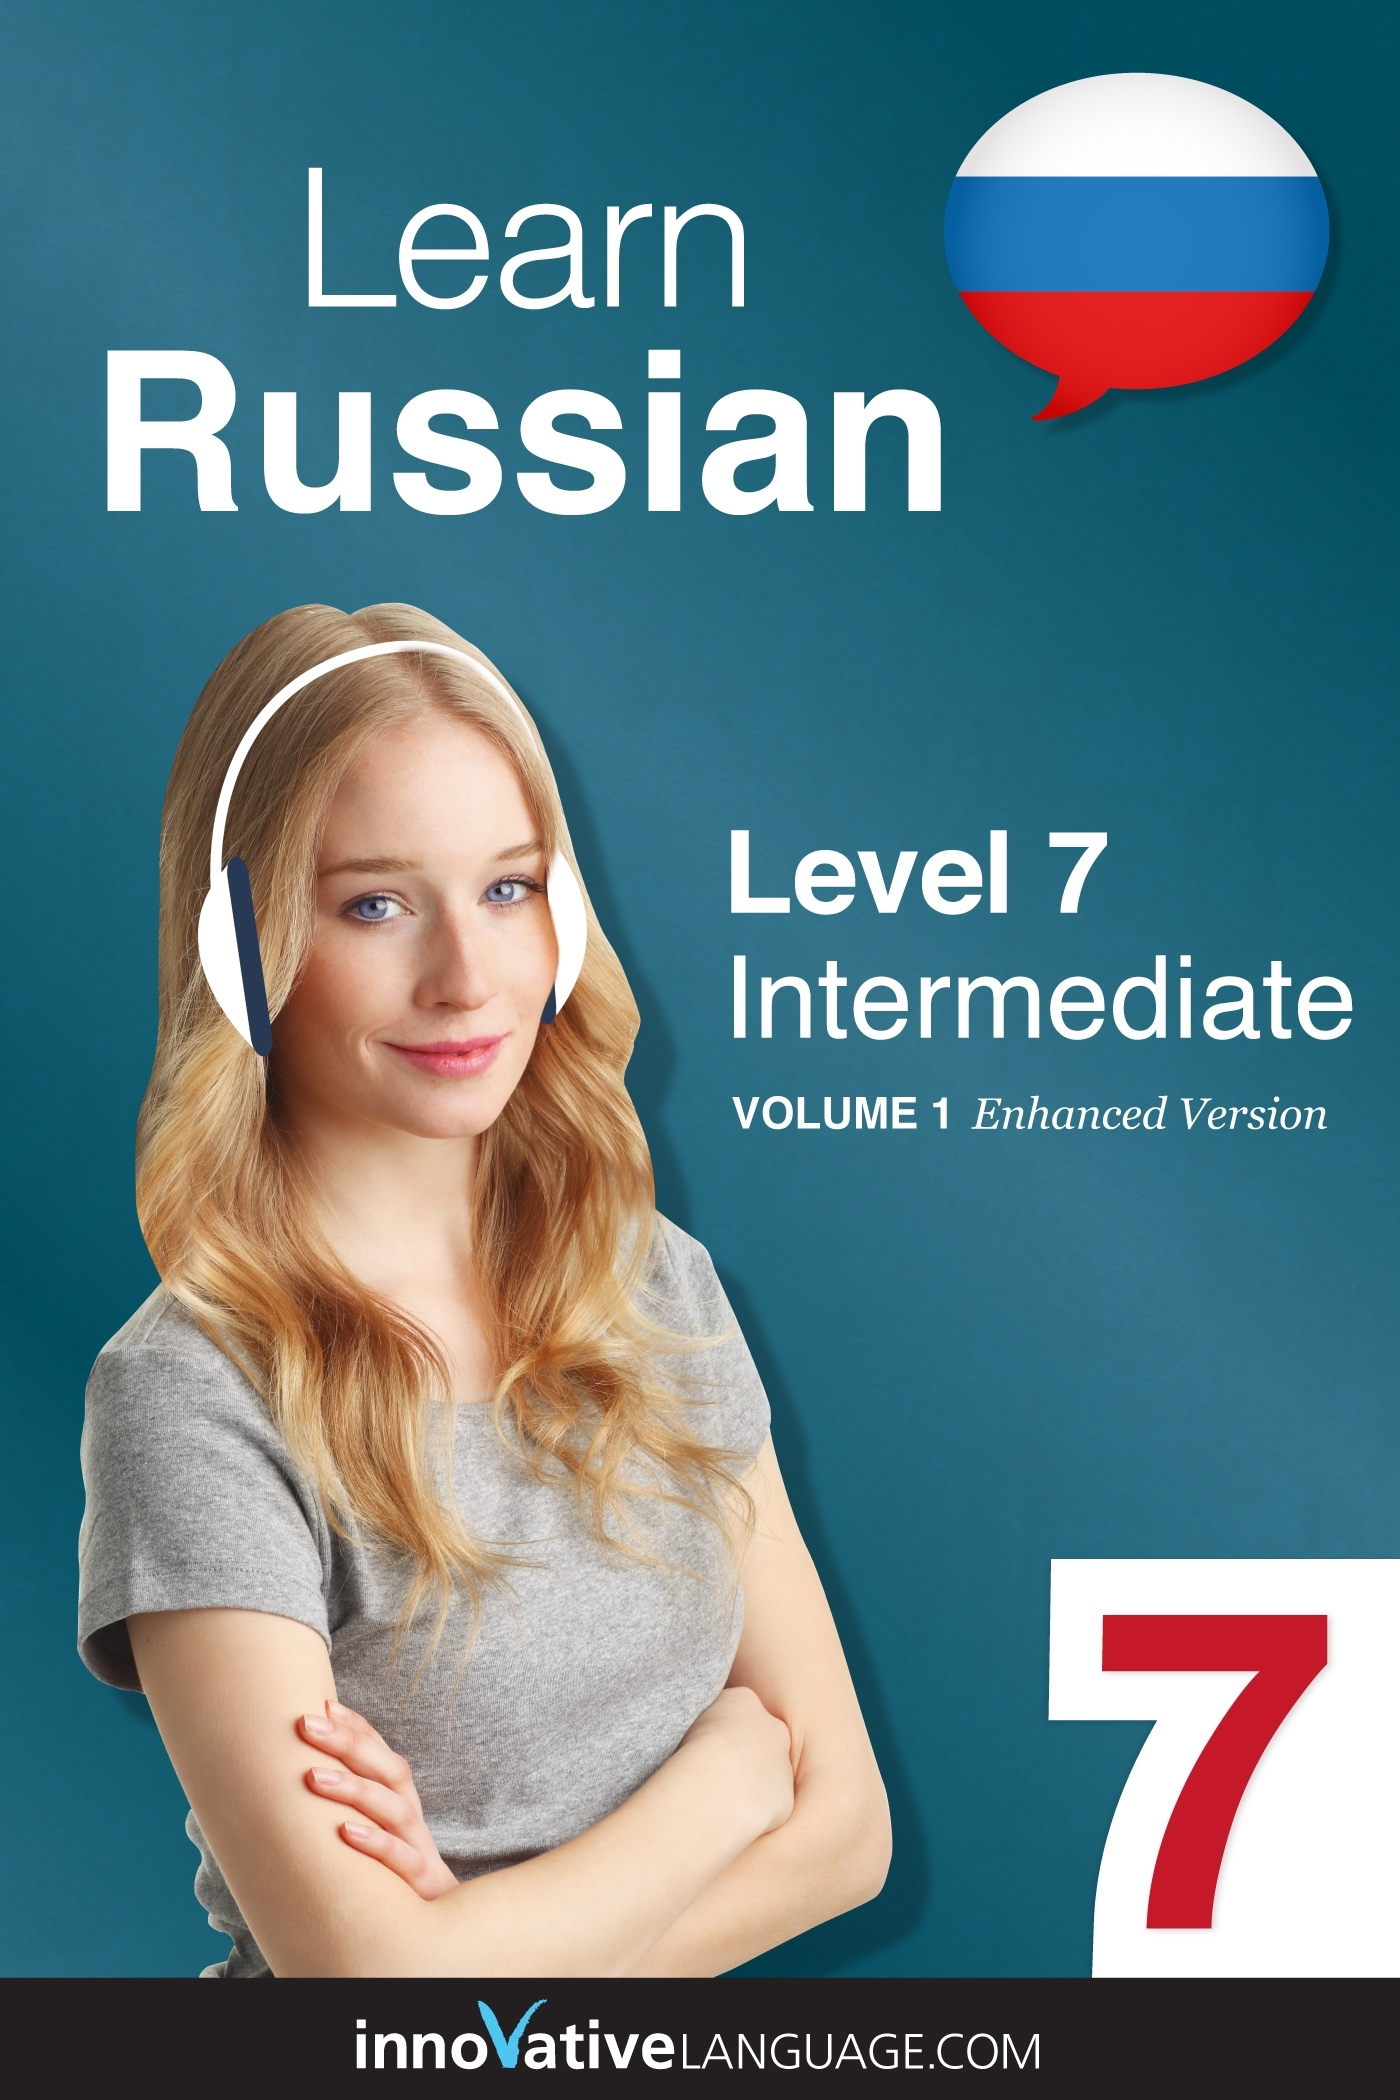 [eBook] Learn Russian - Level 7: Intermediate